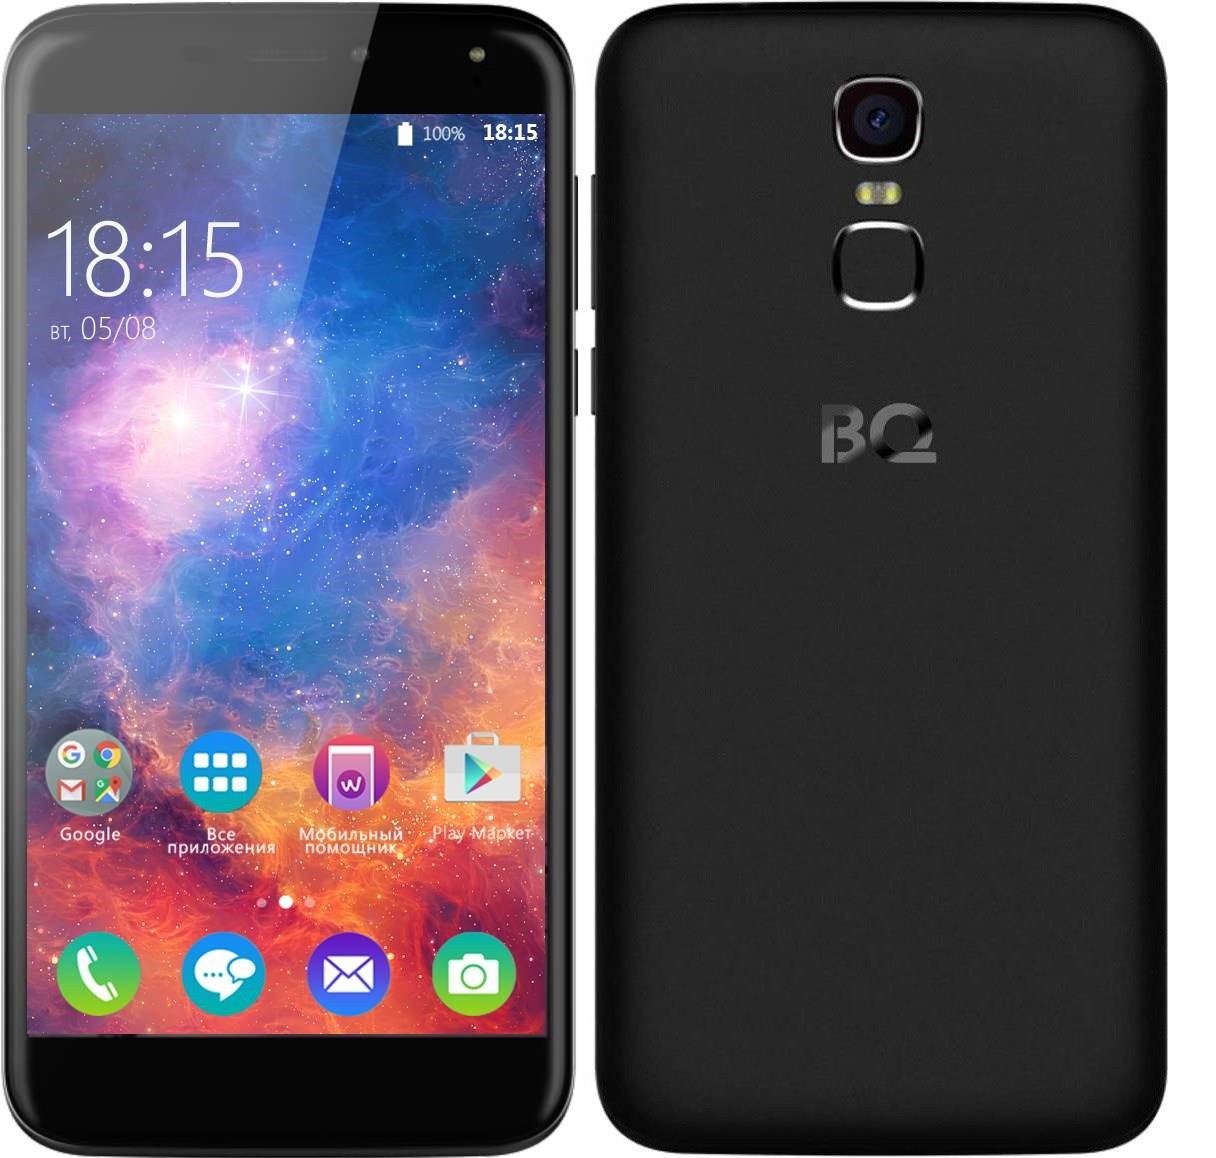 Root and Install TWRP Recovery on BQ Mobile BQS-5520 Mercury, How to Root BQ Mobile BQS-5520 Mercury, Install TWRP Recovery on BQ Mobile BQS-5520 Mercury, Root BQ Mobile BQS-5520 Mercury Using supersu